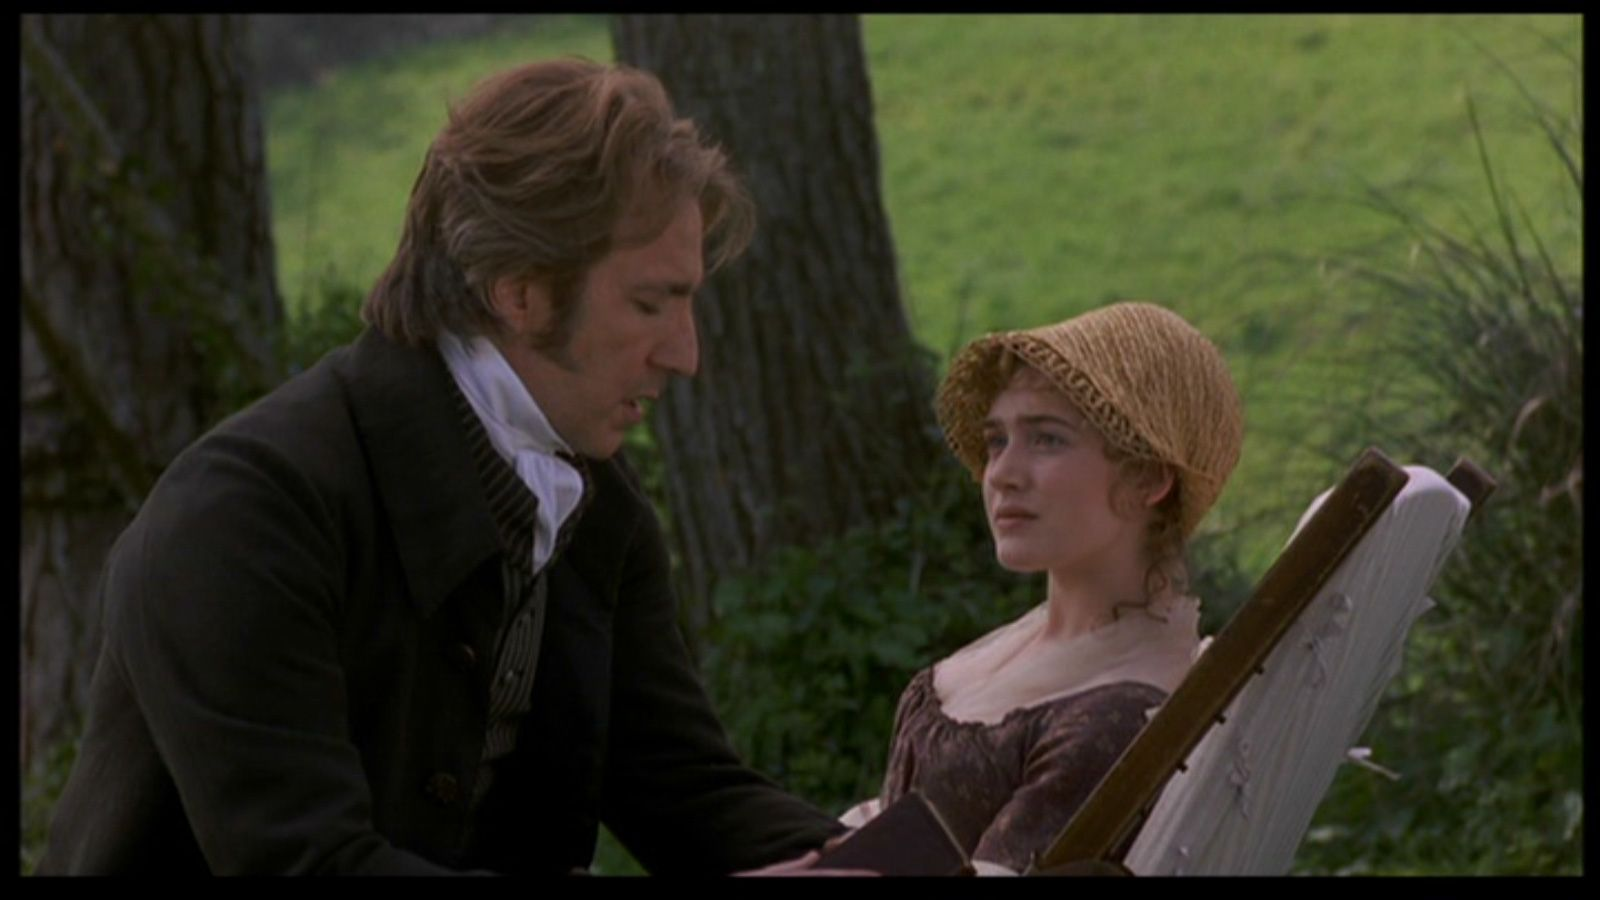 best images about sense sensibility based on a jane austen s 17 best images about sense sensibility based on a jane austen s novel on forgive me my heart and movie costumes